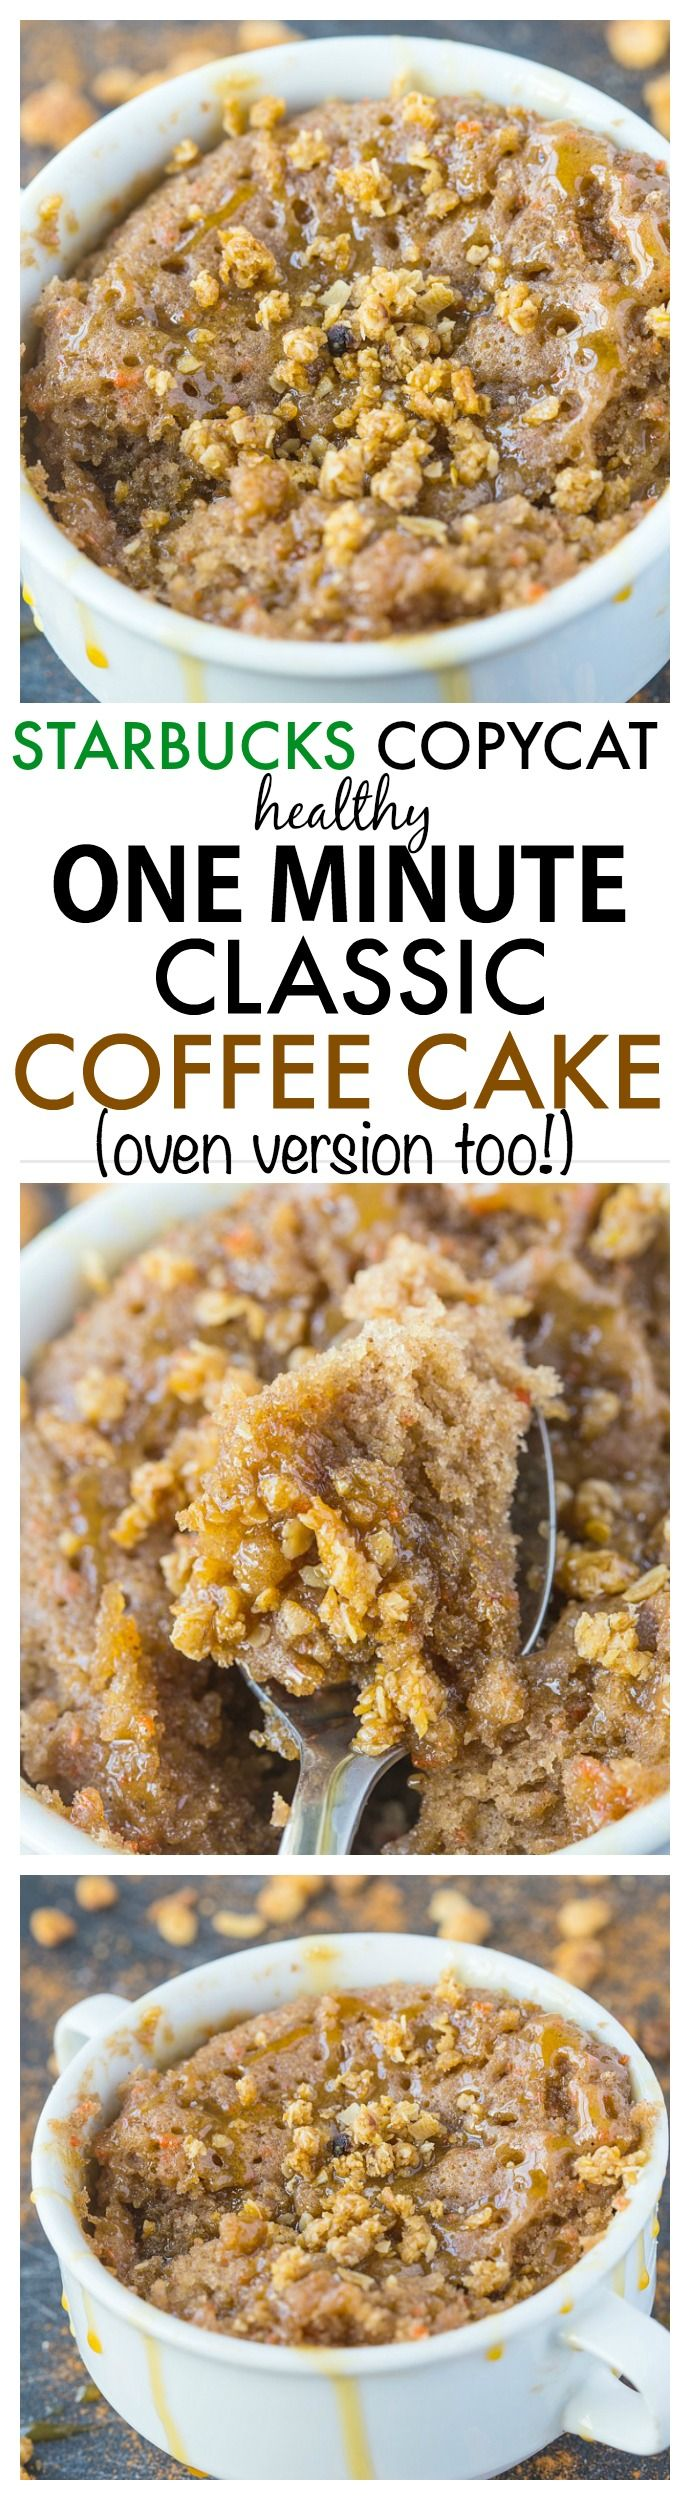 Healthy 1 Minute Classic Coffee Cake- Inspired by Starbucks, this healthy cake recipe is moist, fluffy and SO delicious- There's no oil, butter or added sugar AND it only takes one minute- Oven option too! {vegan, gluten free, paleo}- thebigmansworld.com